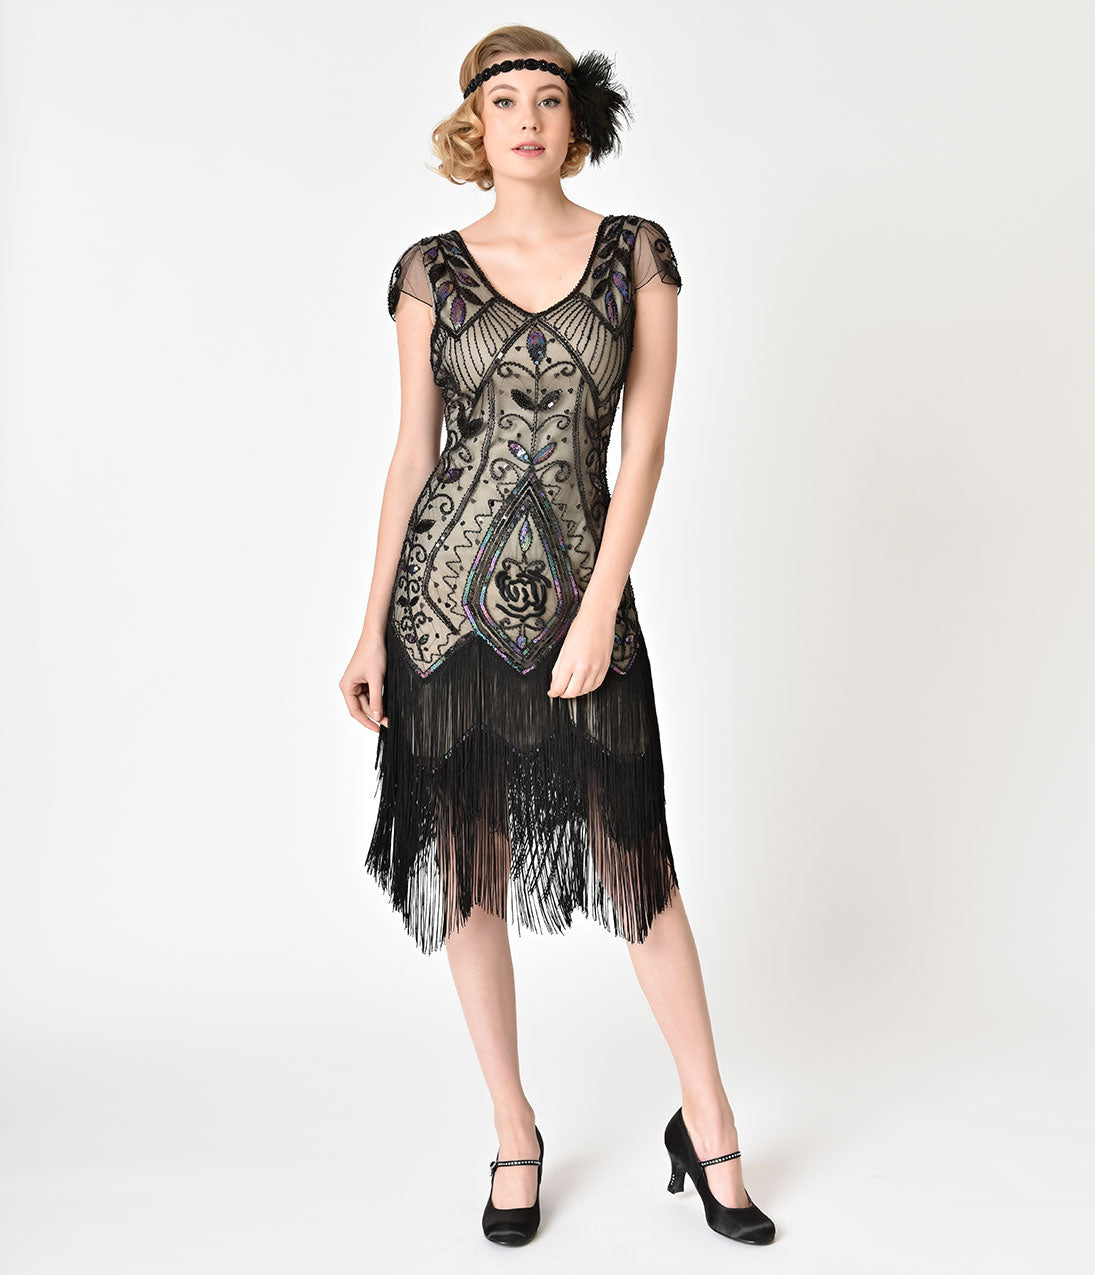 Charleston Dress: Fringe Flapper Dress Unique Vintage 1920S Black Rose  Champagne Noele Fringe Flapper Dress $98.00 AT vintagedancer.com